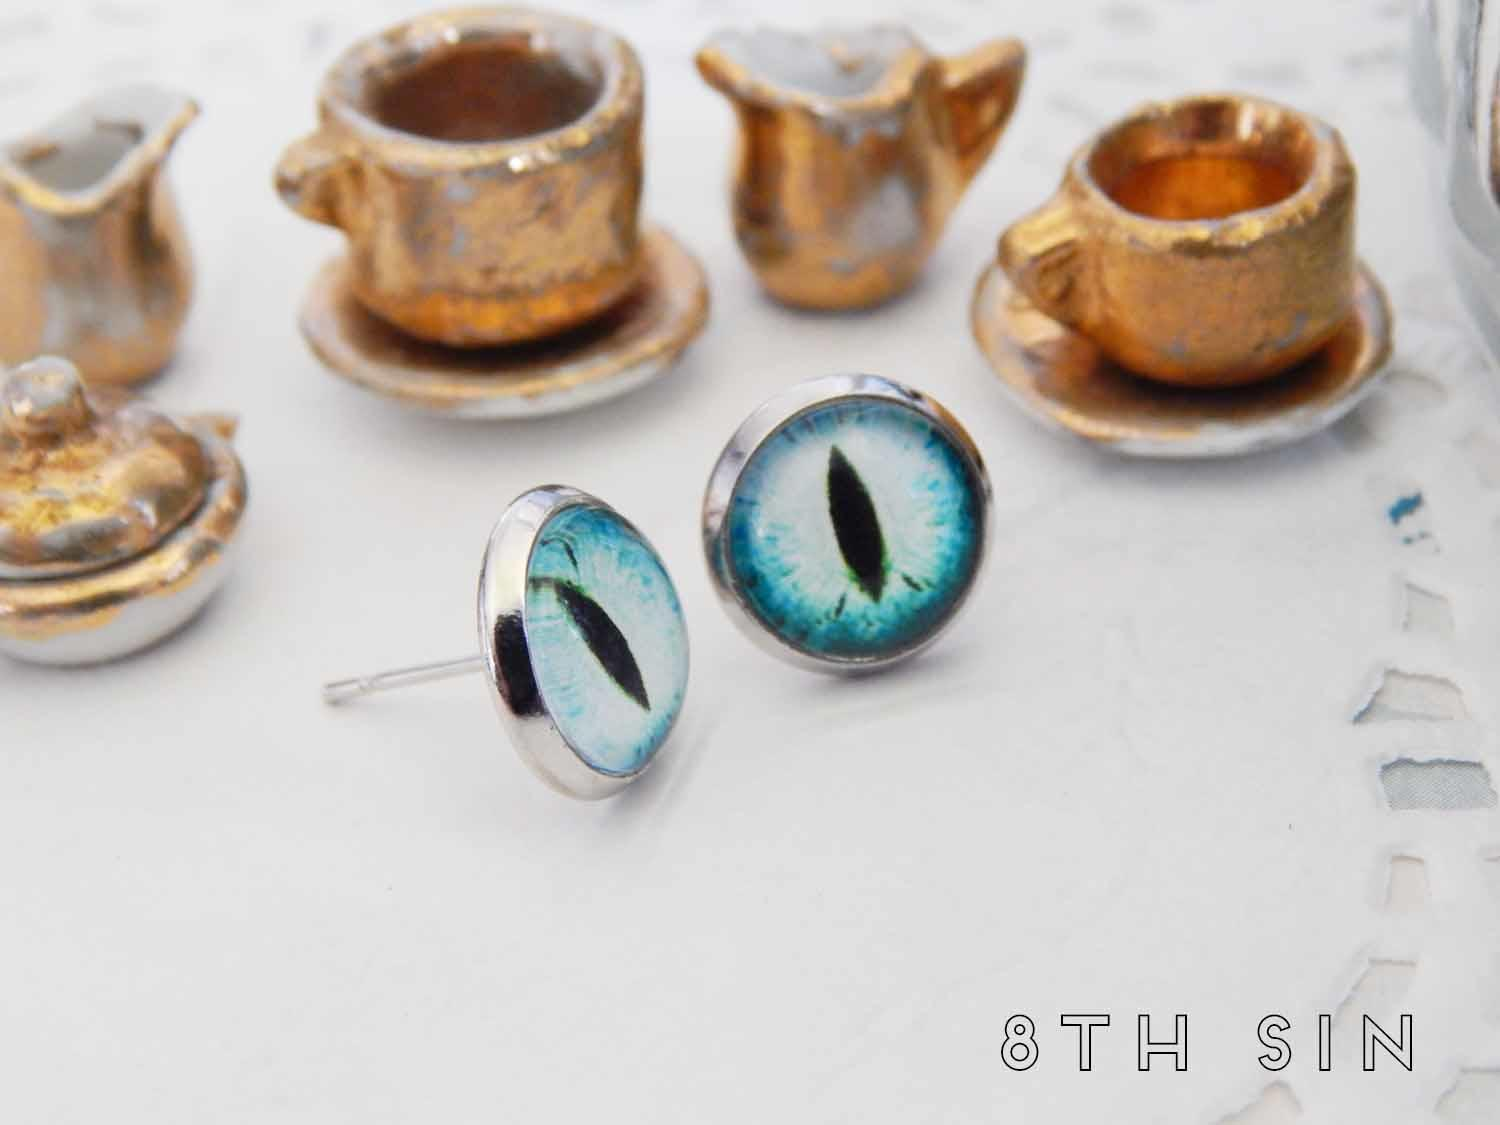 antique silver and blue dragon eye stud earrings